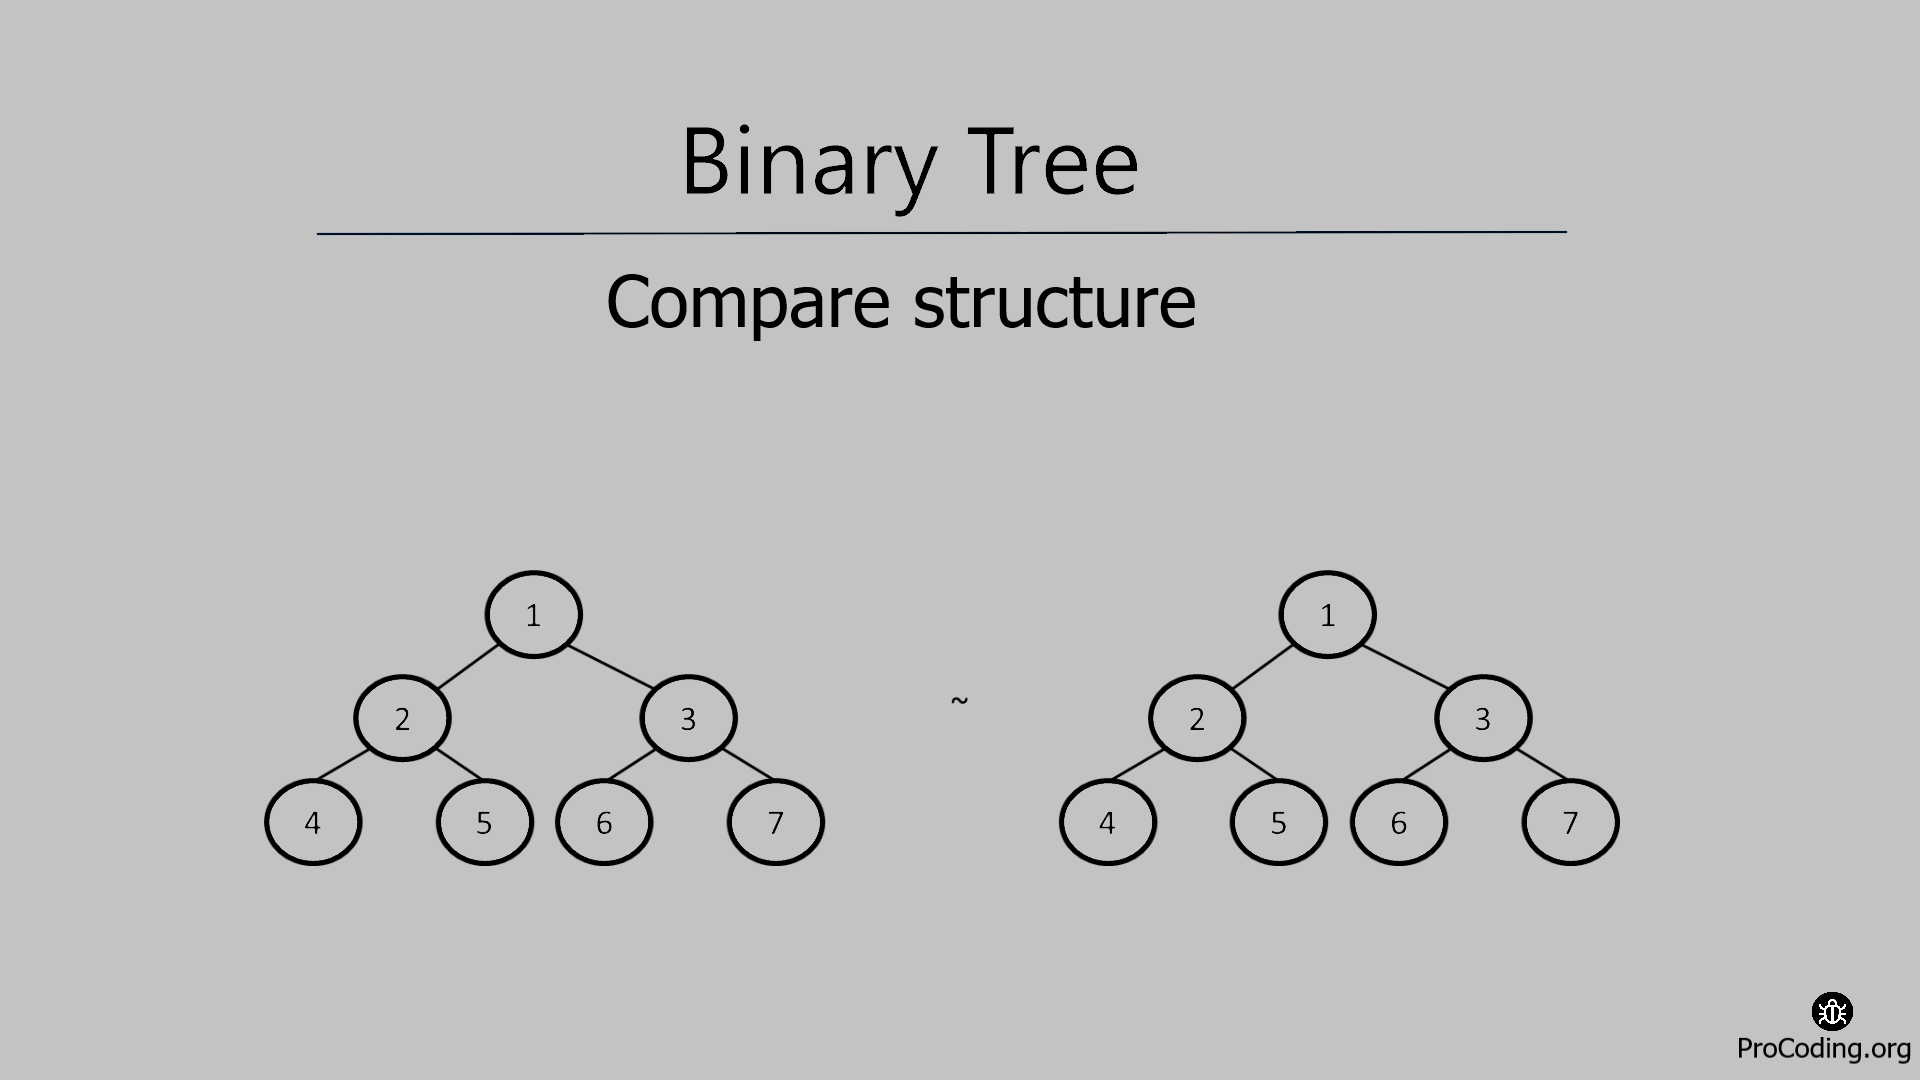 Compare structure of a binary tree